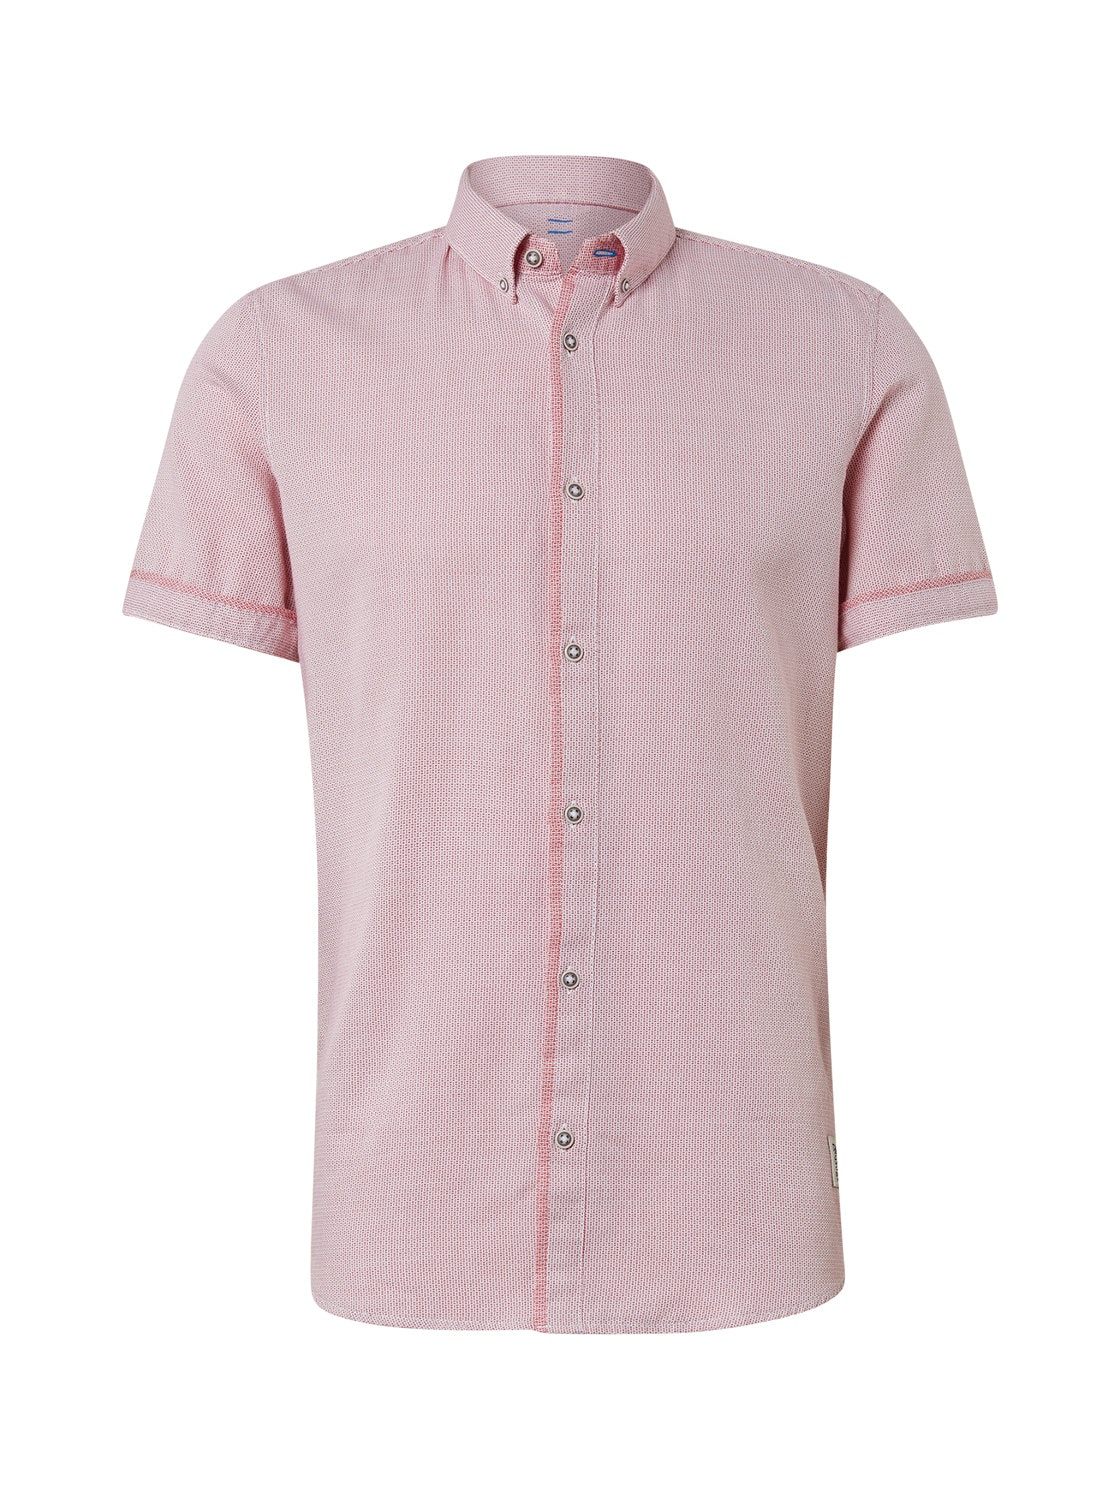 floyd casual structure shirt, white red structure           Red